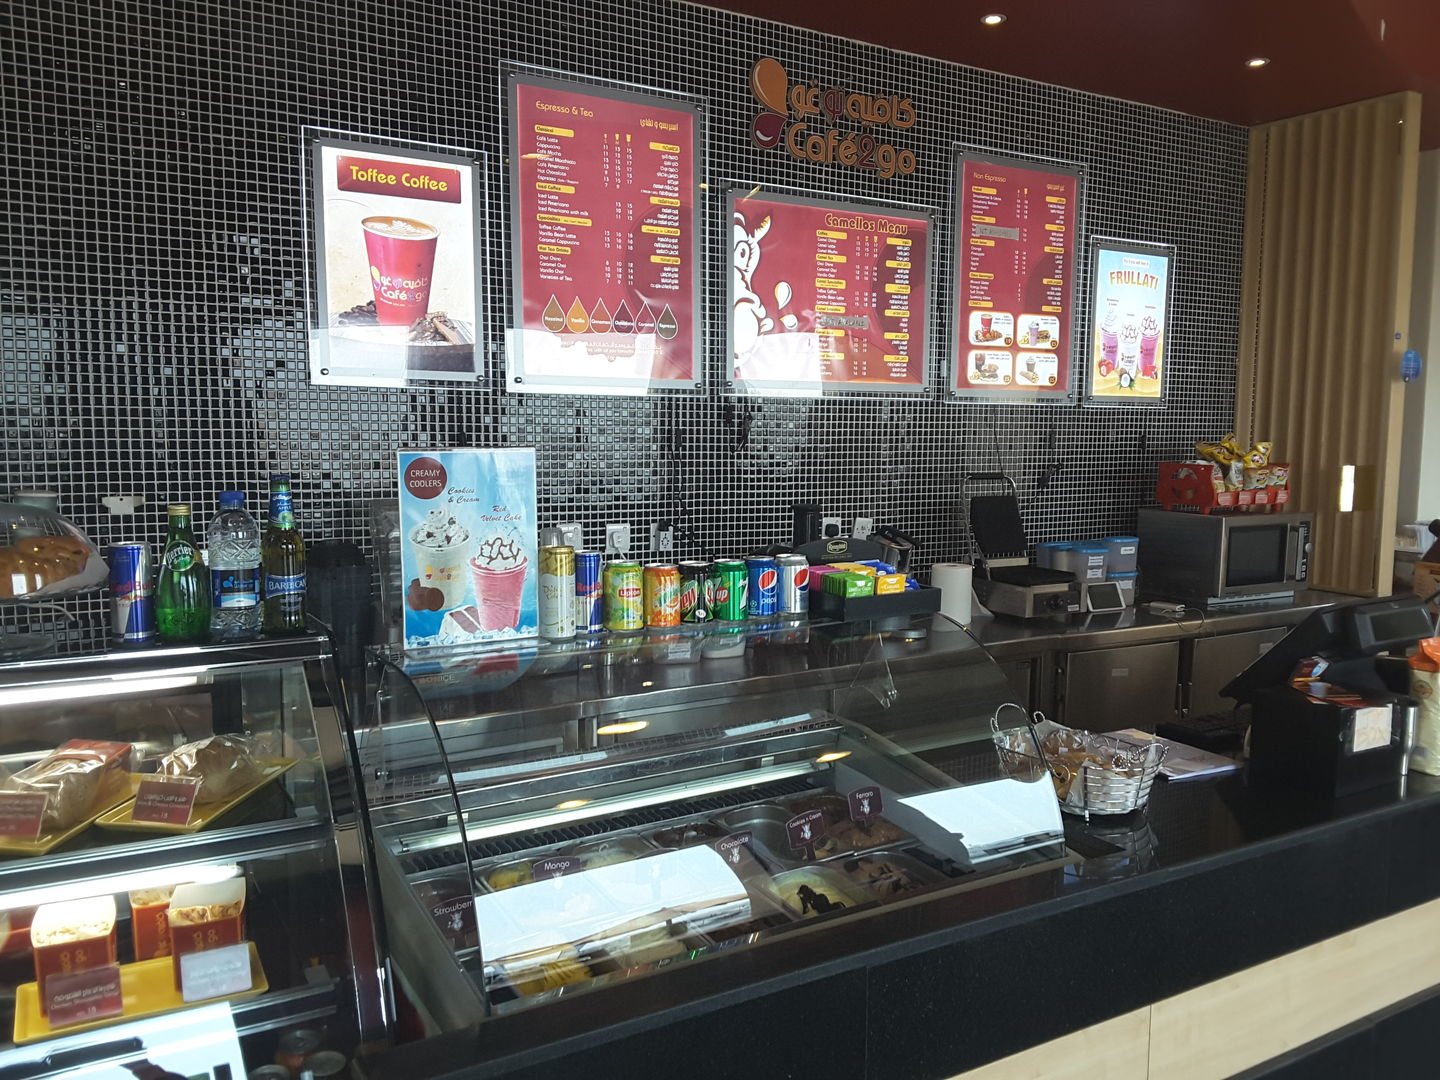 HiDubai-business-cafe-2-go-food-beverage-coffee-shops-umm-suqeim-2-dubai